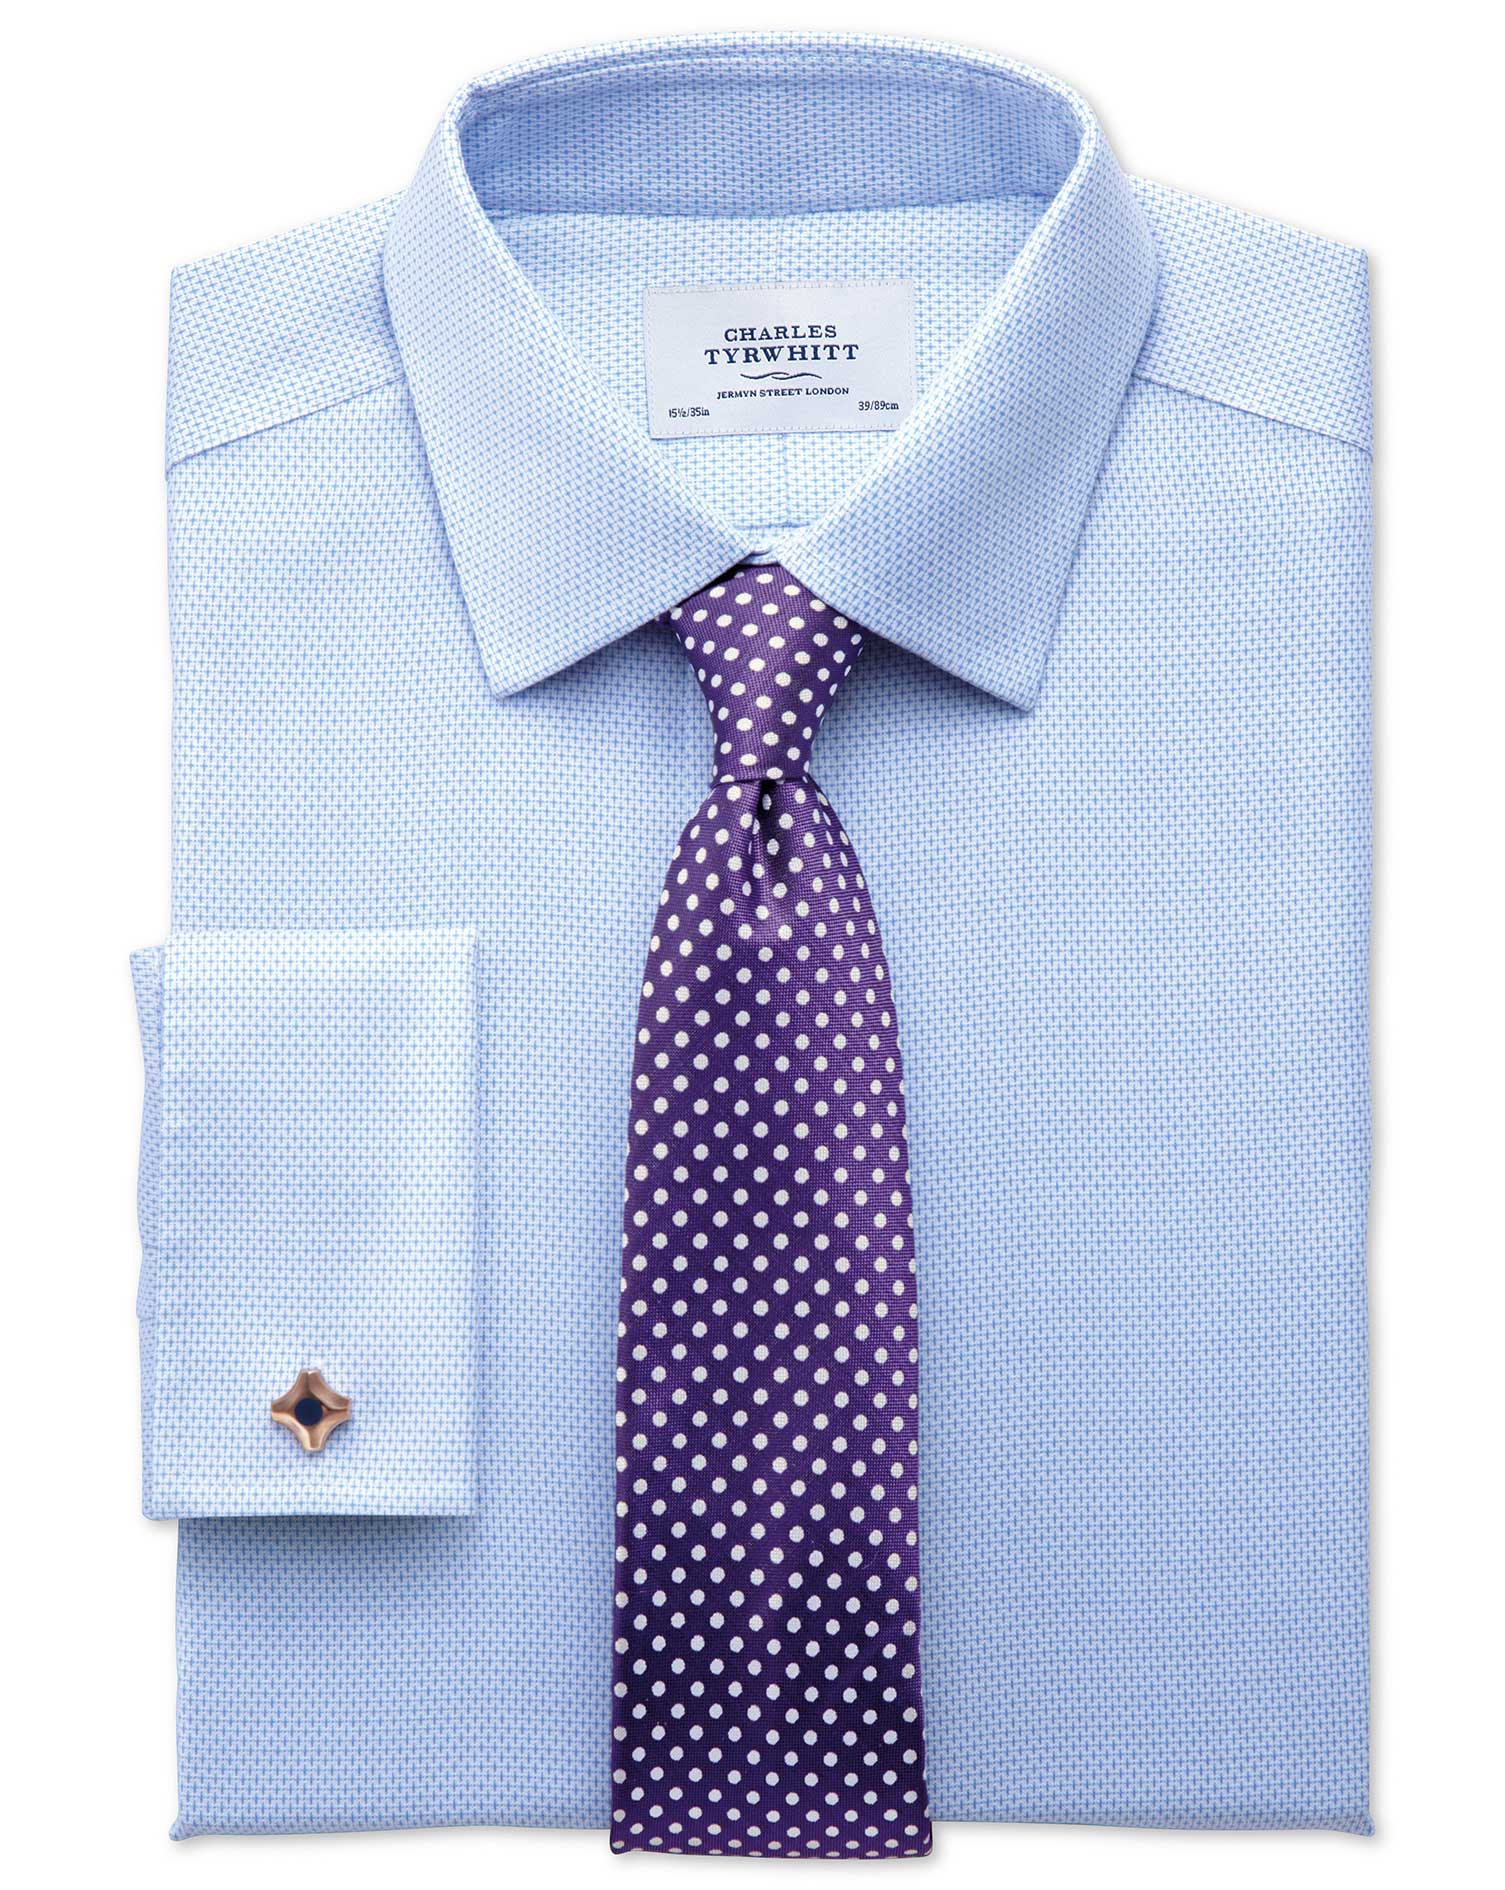 Extra slim fit non iron imperial weave sky blue shirt for Charles tyrwhitt shirts review